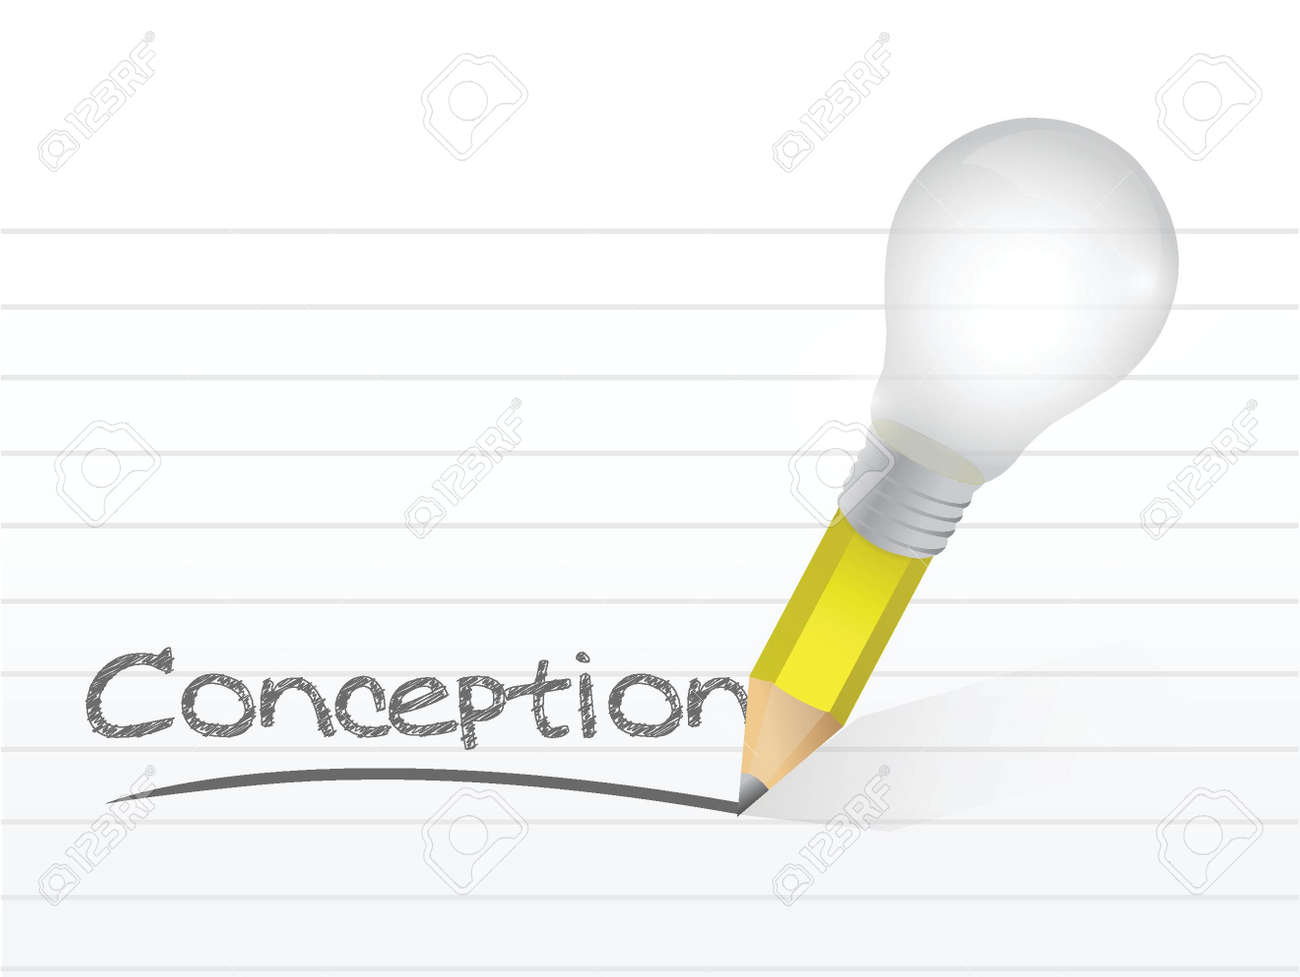 conception written with a light bulb idea pencil illustration design over notepad paper Stock Vector - 20760551